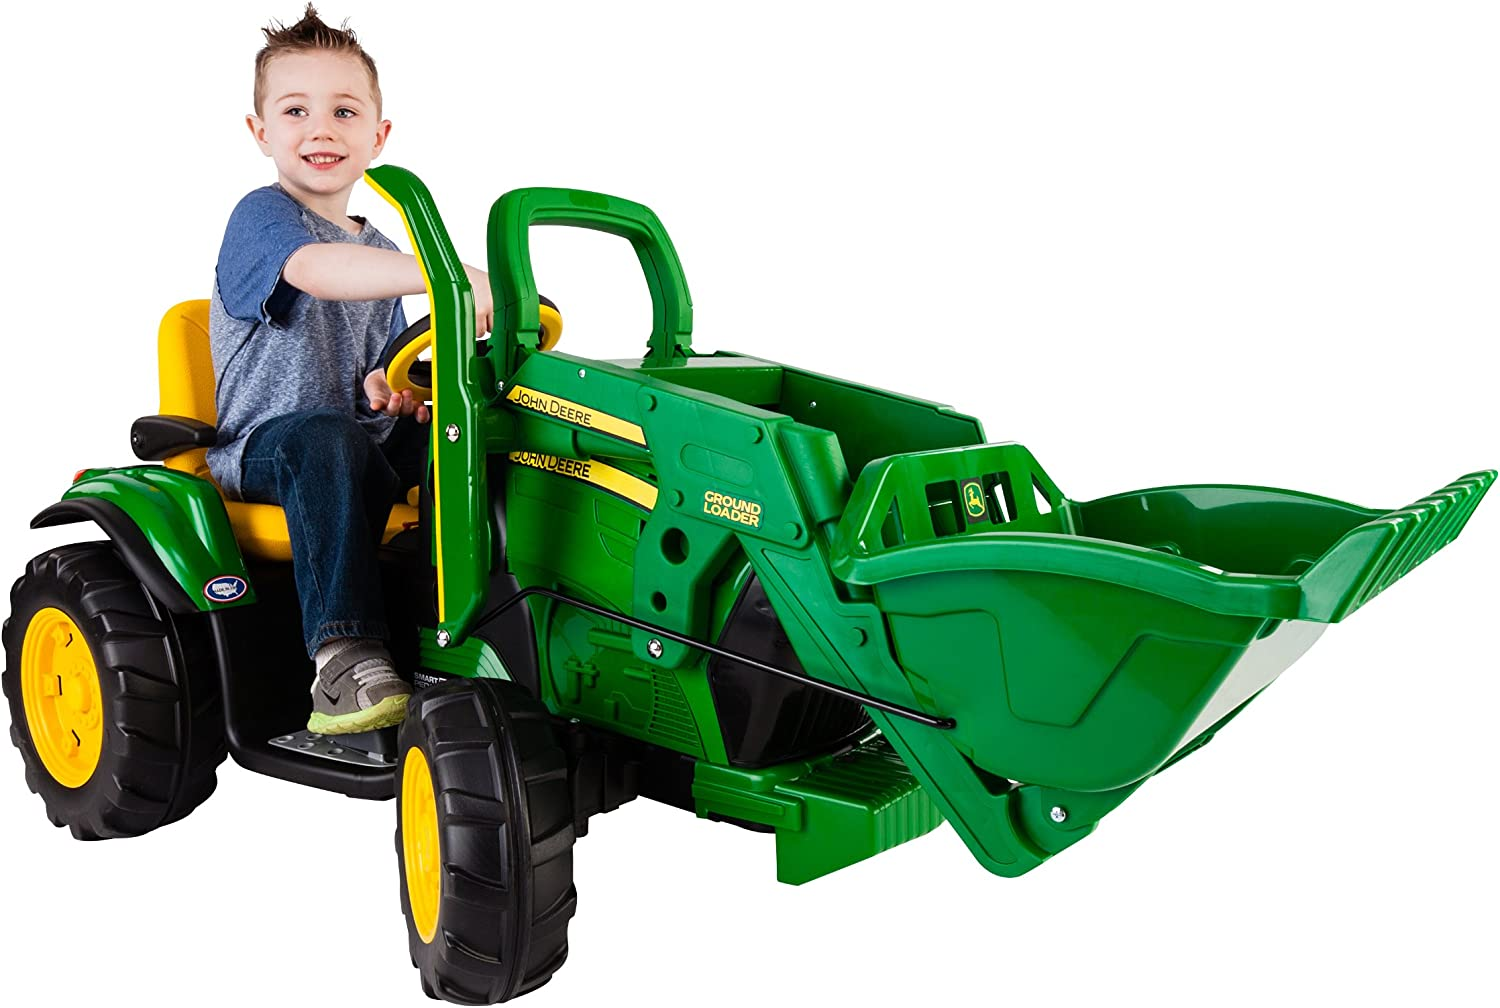 B00H2VSCK0 Peg Perego John Deere Ground Loader Ride On, Green 8191hPe0SzL.SL1500_